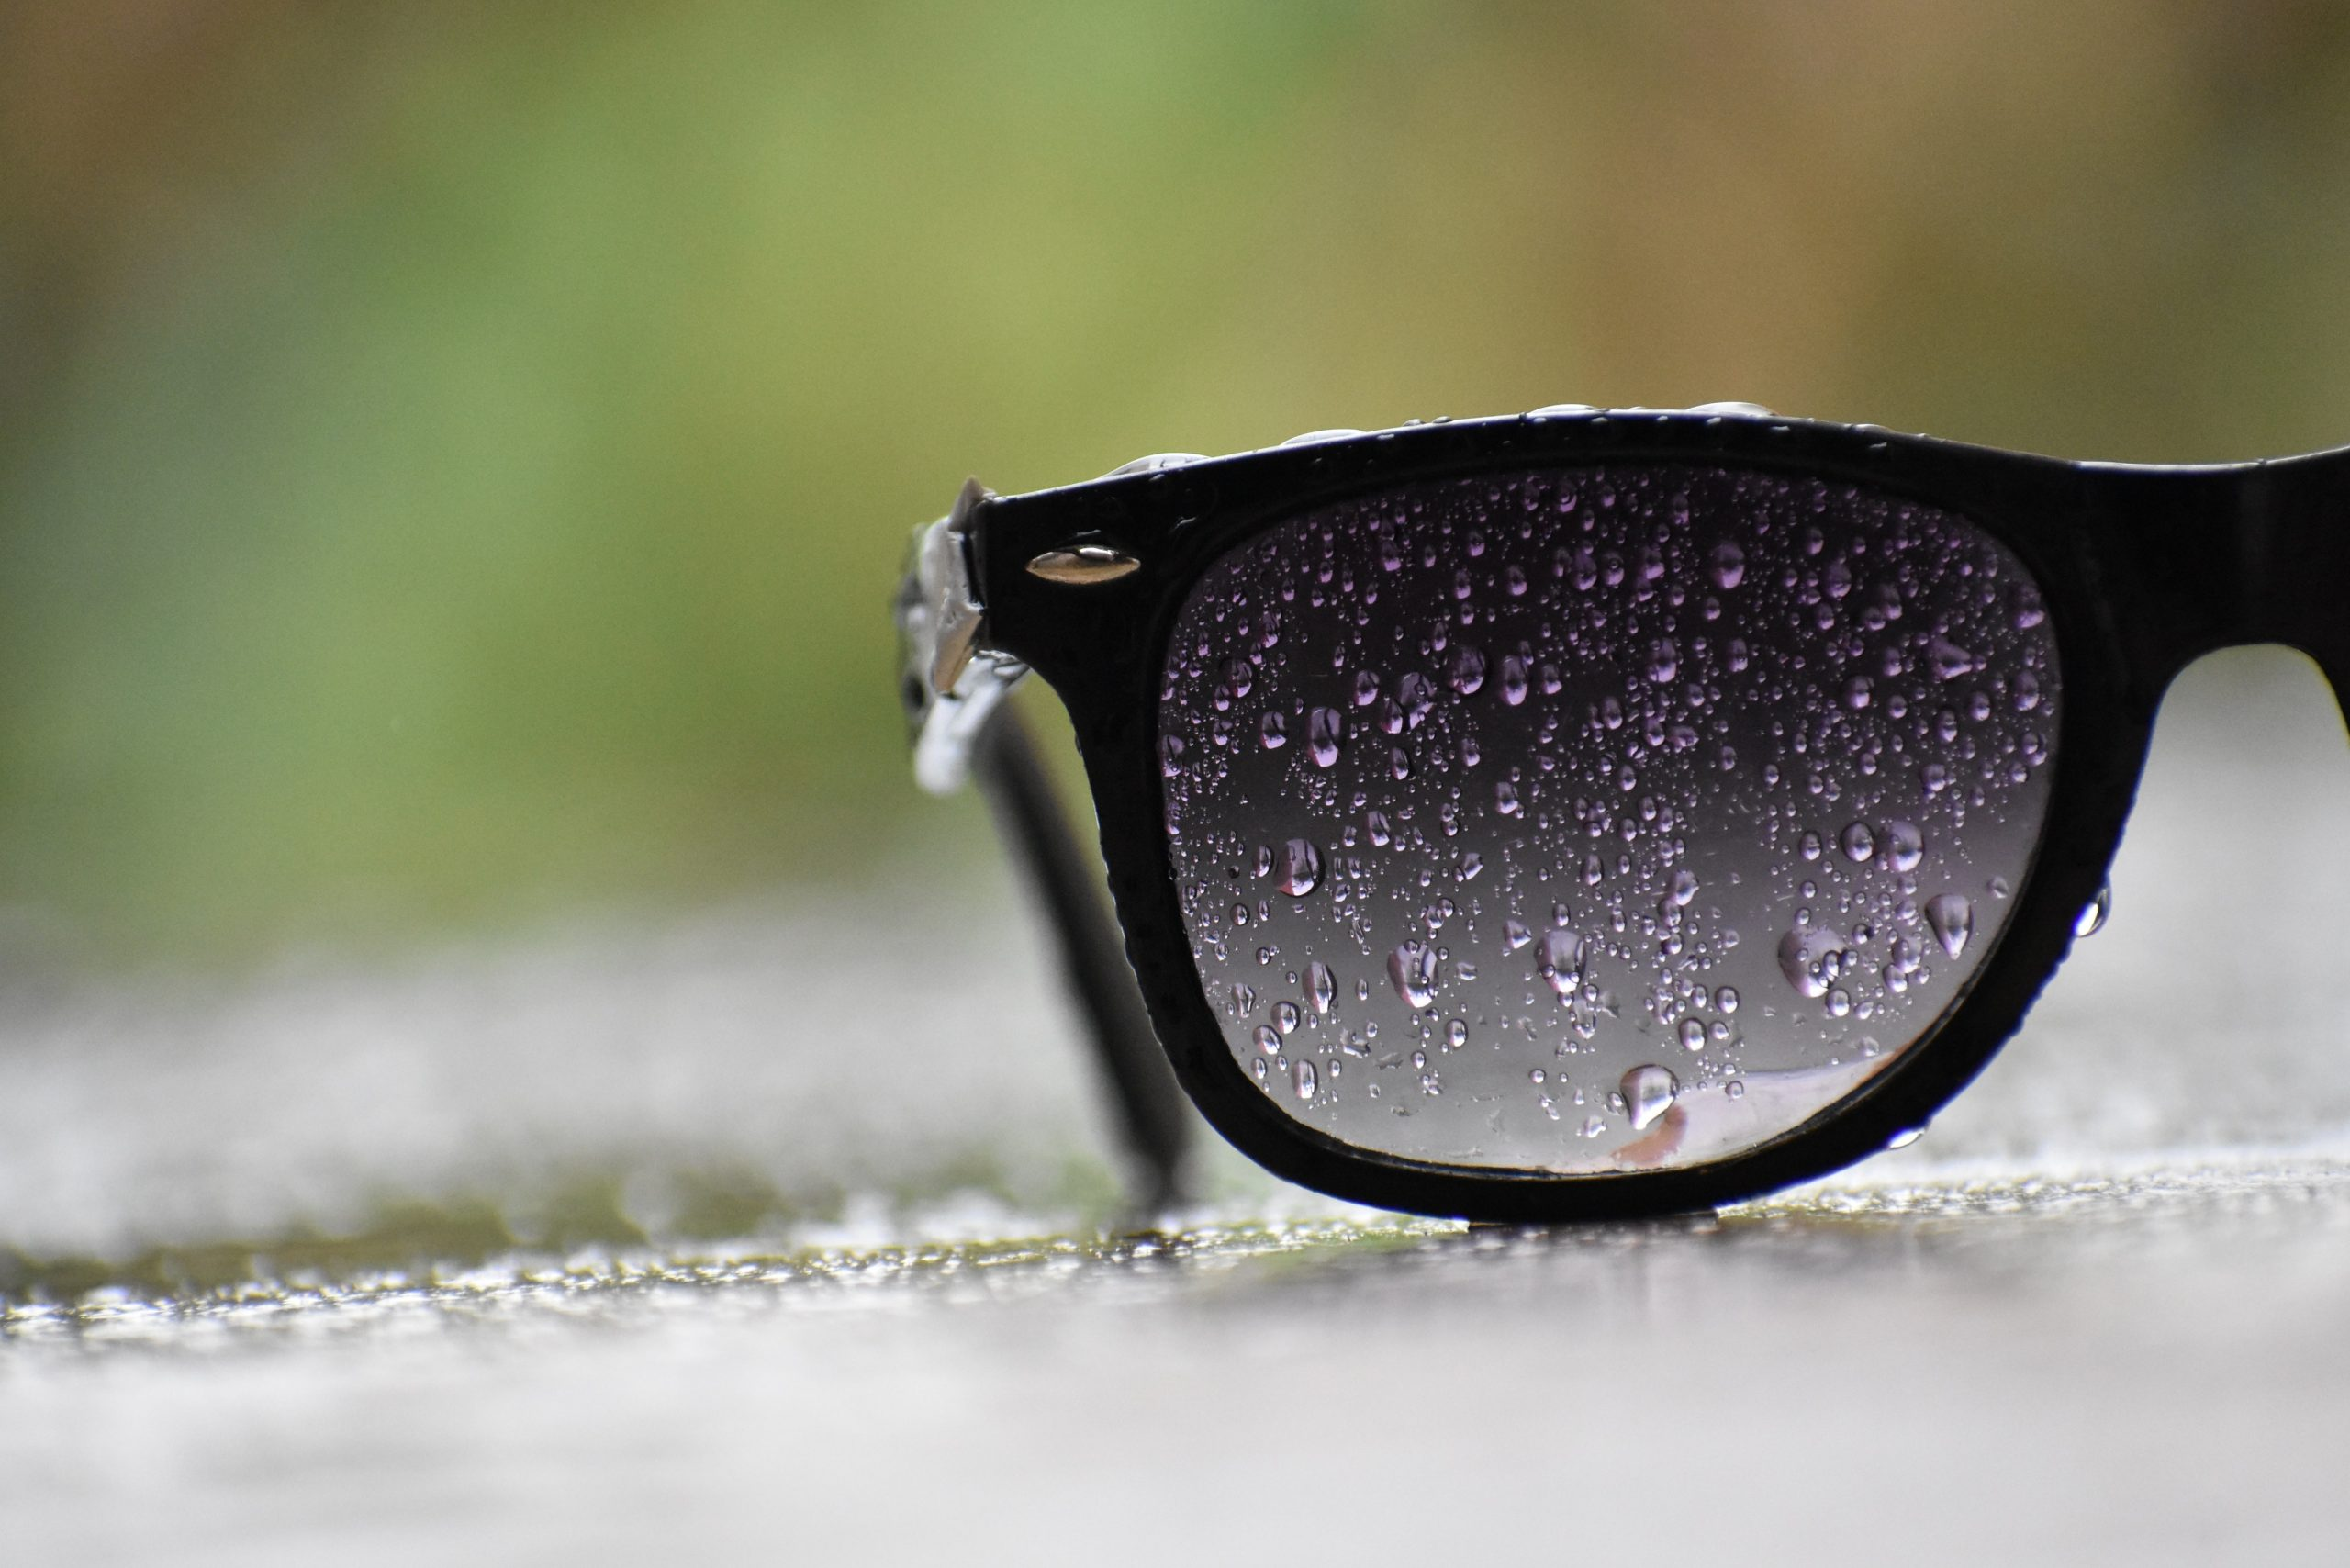 black-sunglasses-with-water-droplets